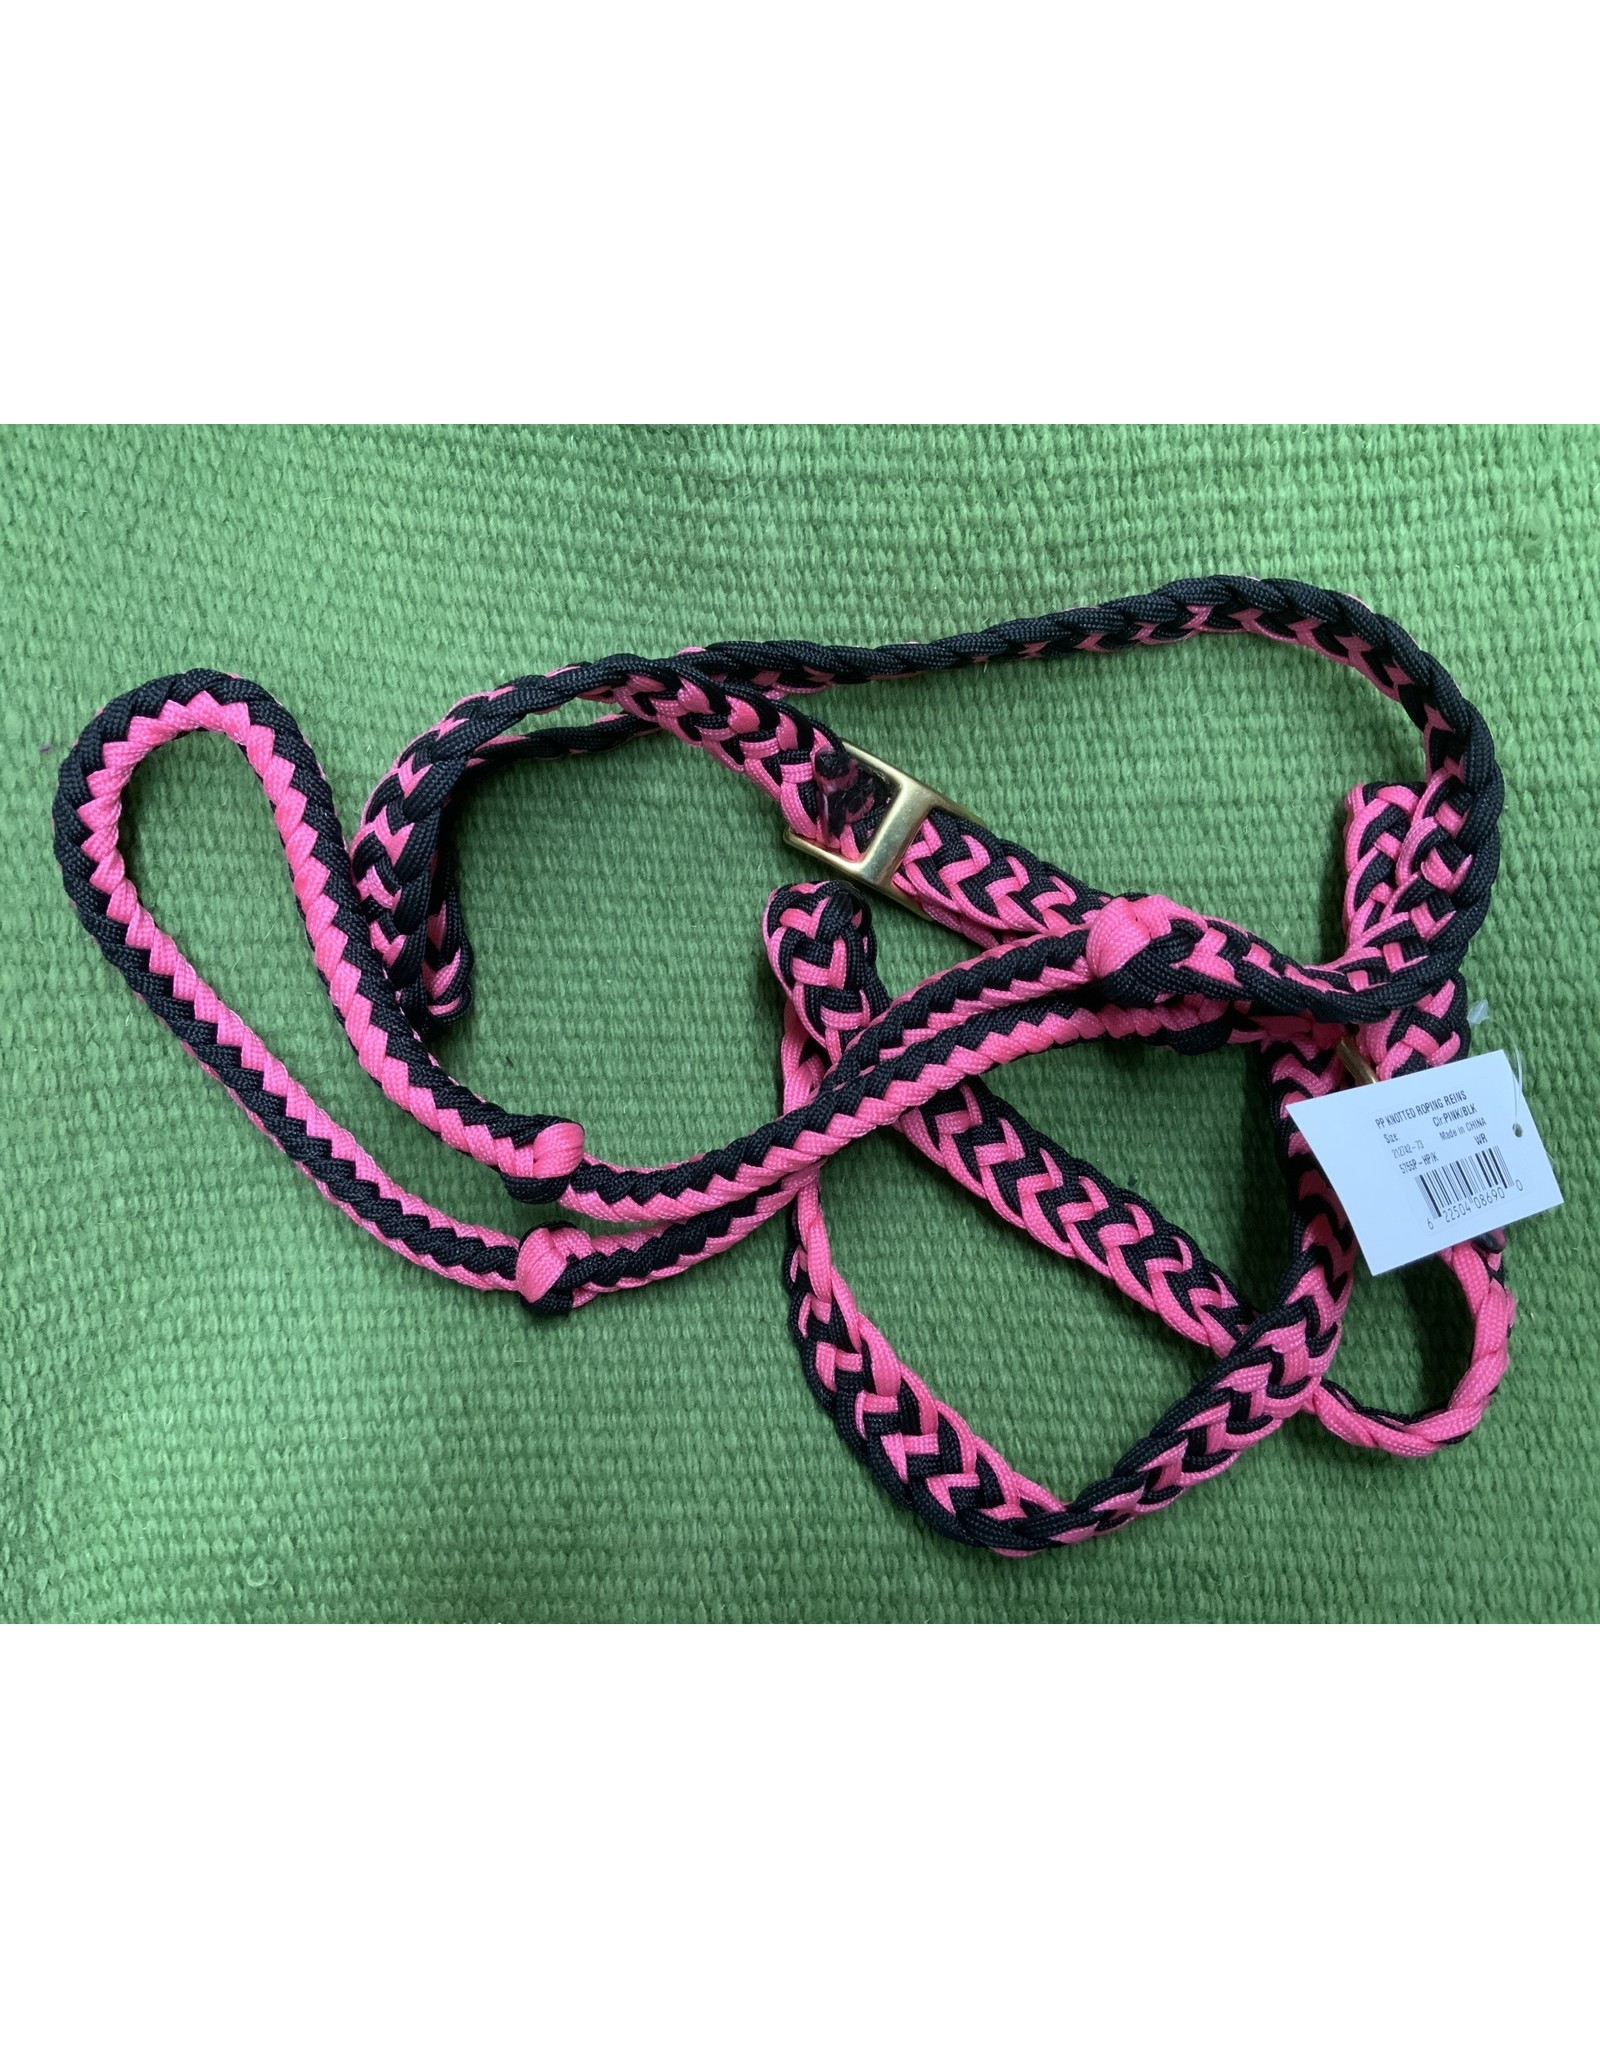 Braided Poly Knotted Roping Rein - Hot Pink/Black 2742 73